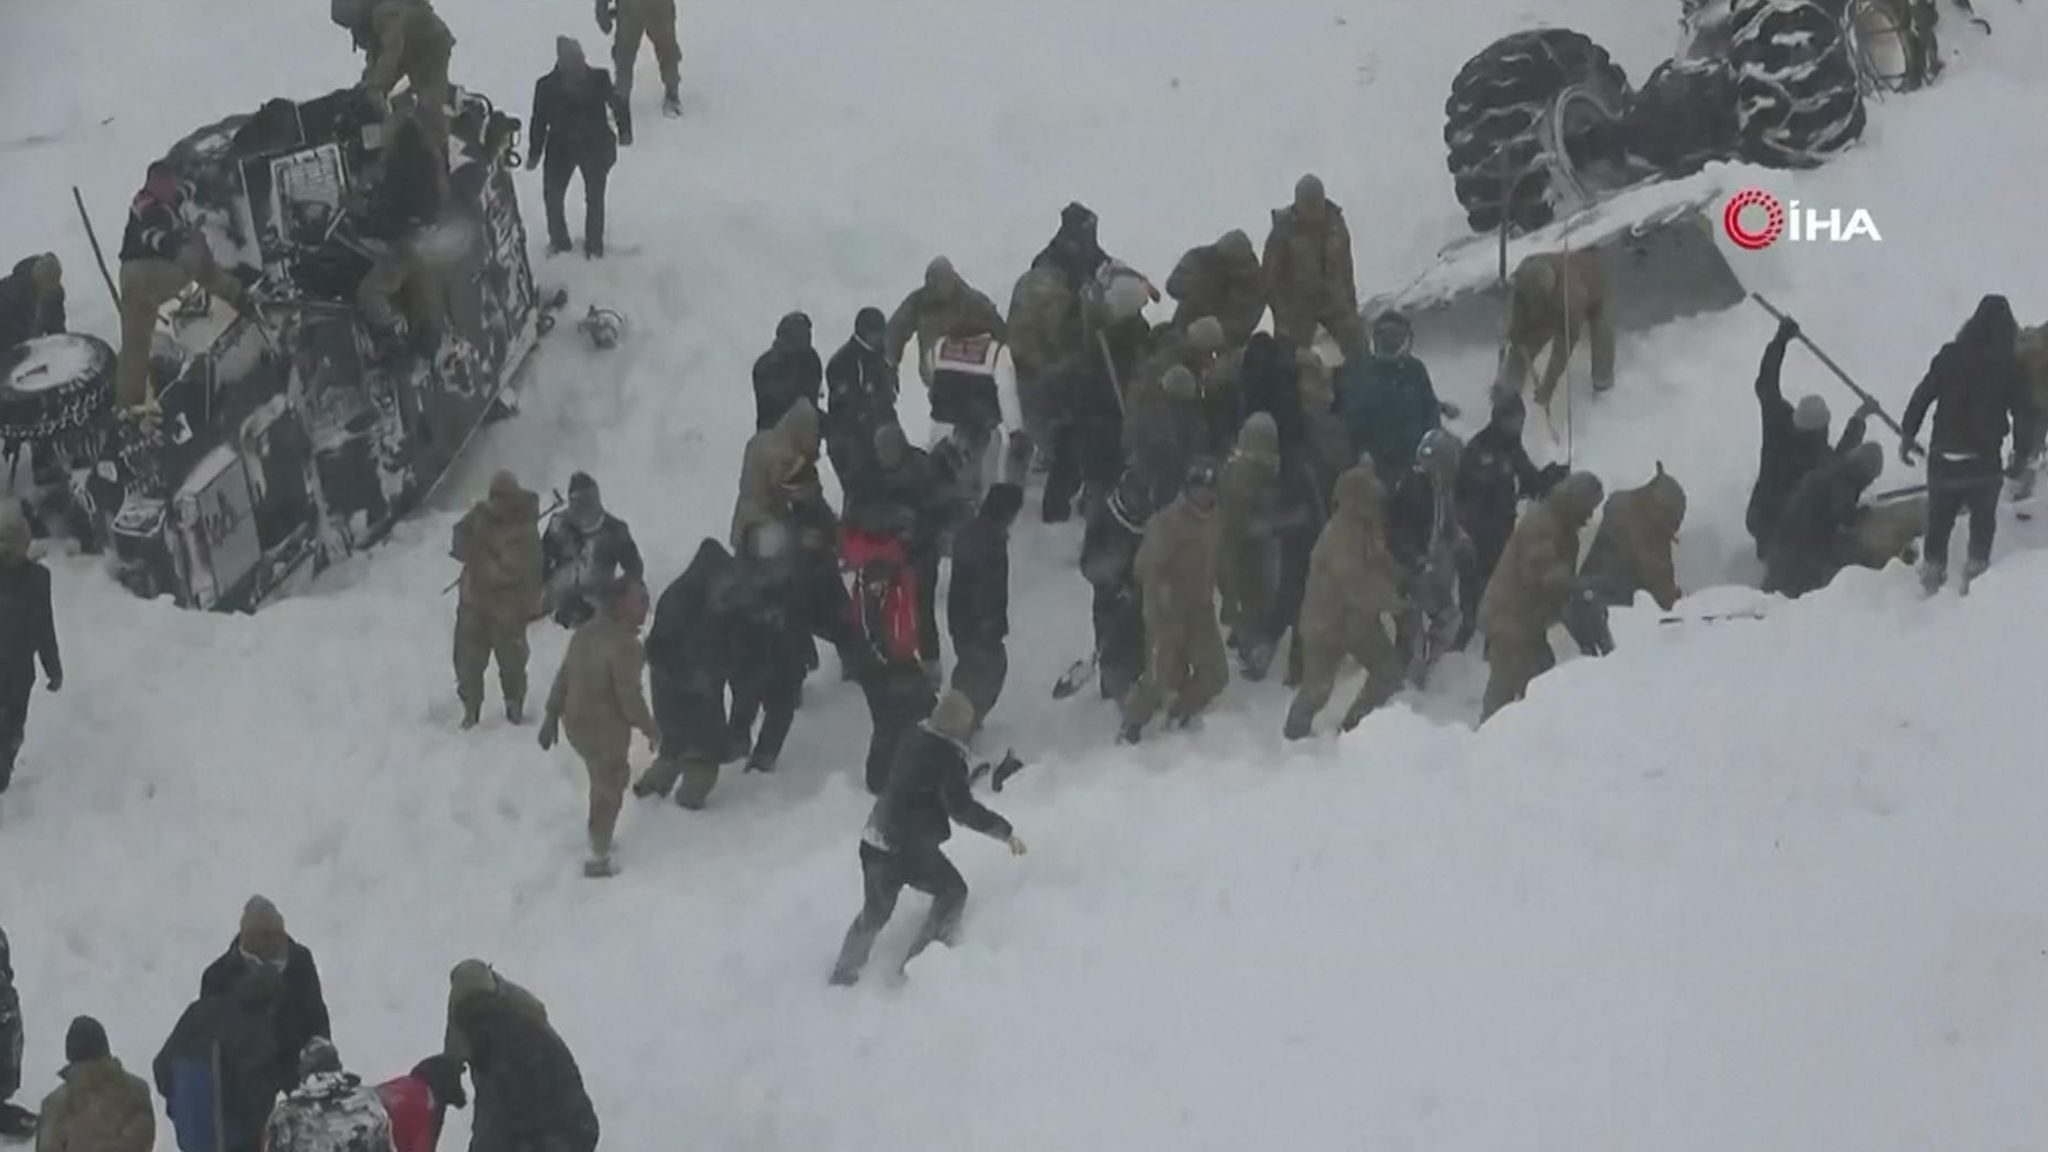 Turkey avalanche: 23 killed as frantic search under way for people trapped under snow